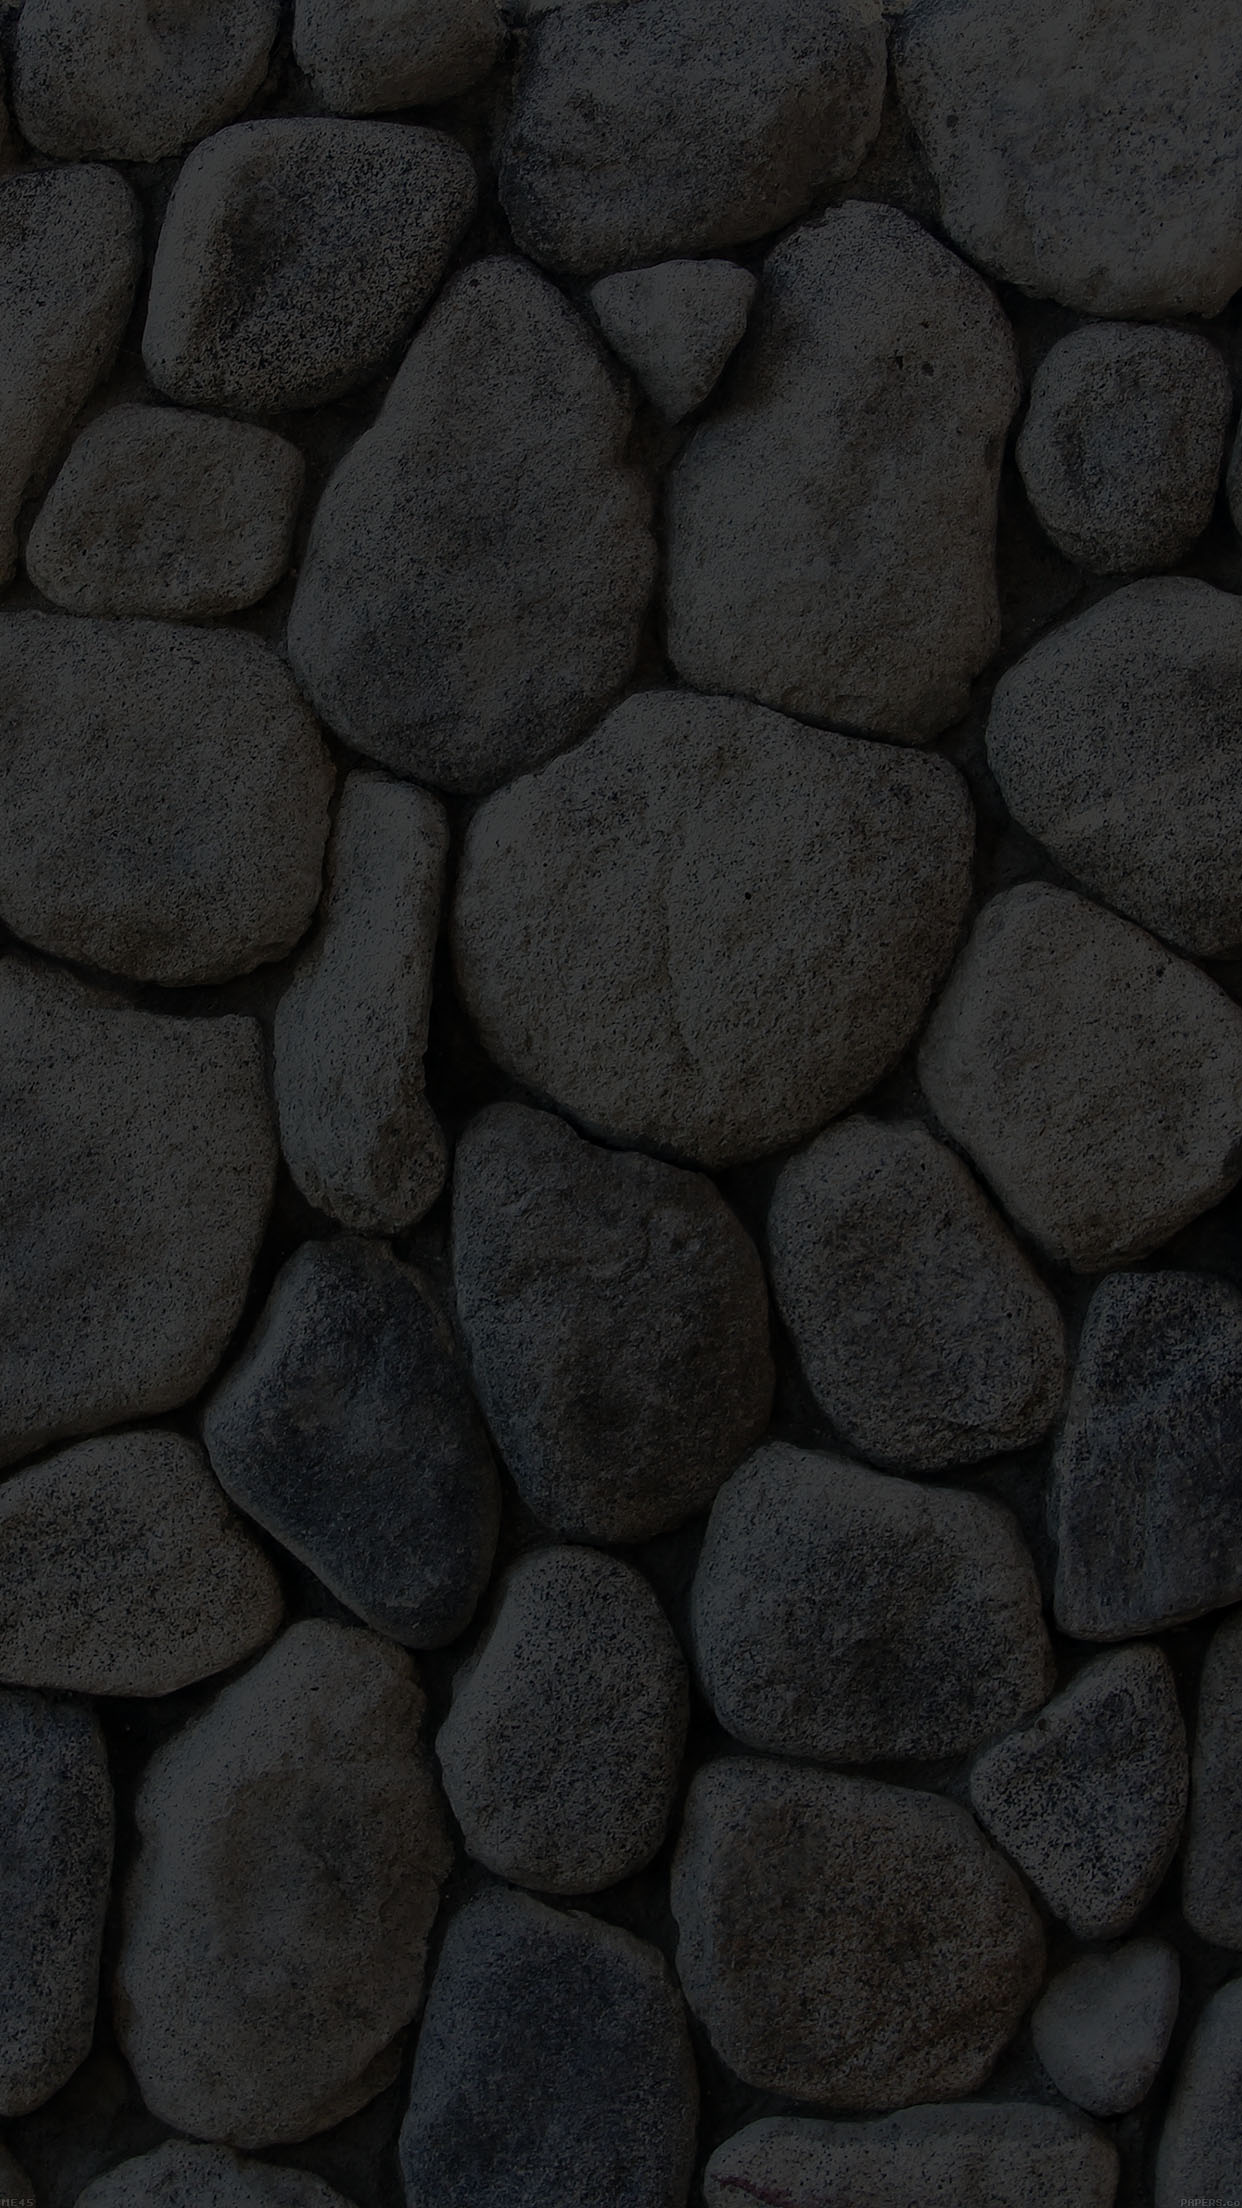 Lg Optimus 3d Wallpaper Me45 Stone Texture Dark Backwall Papers Co